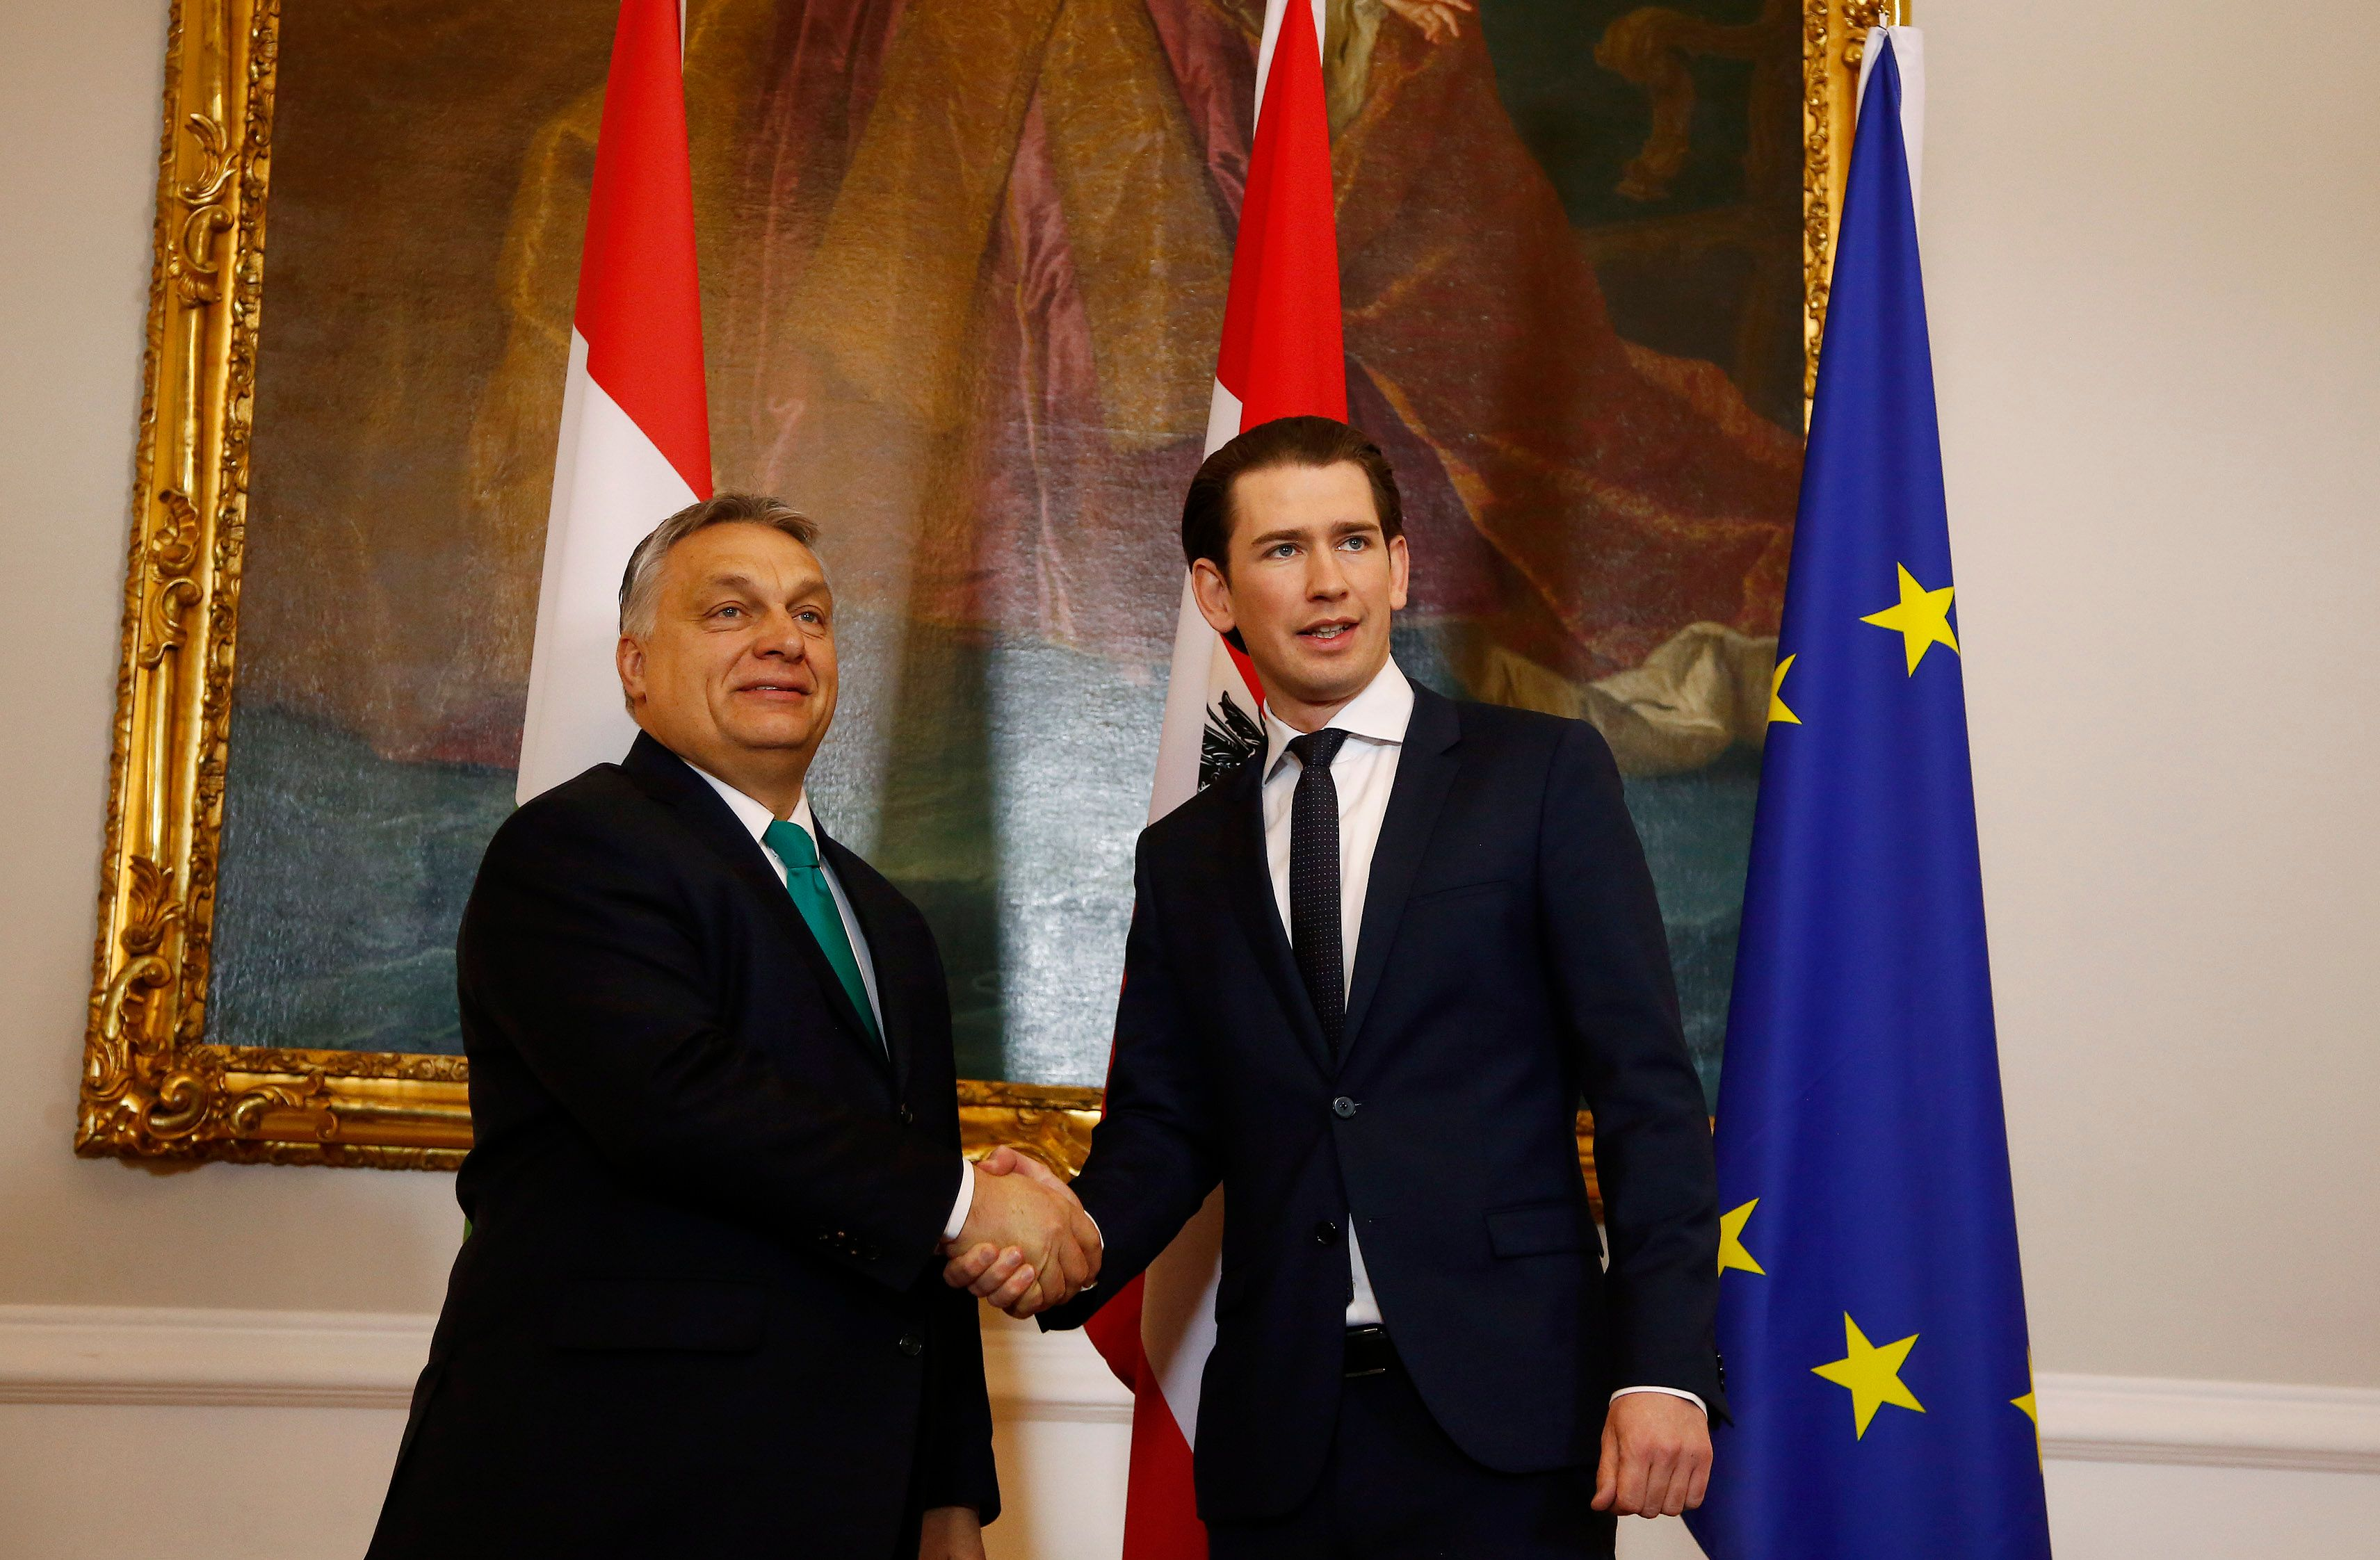 Austria's right-wing government pledges to work with Hungary's Orban